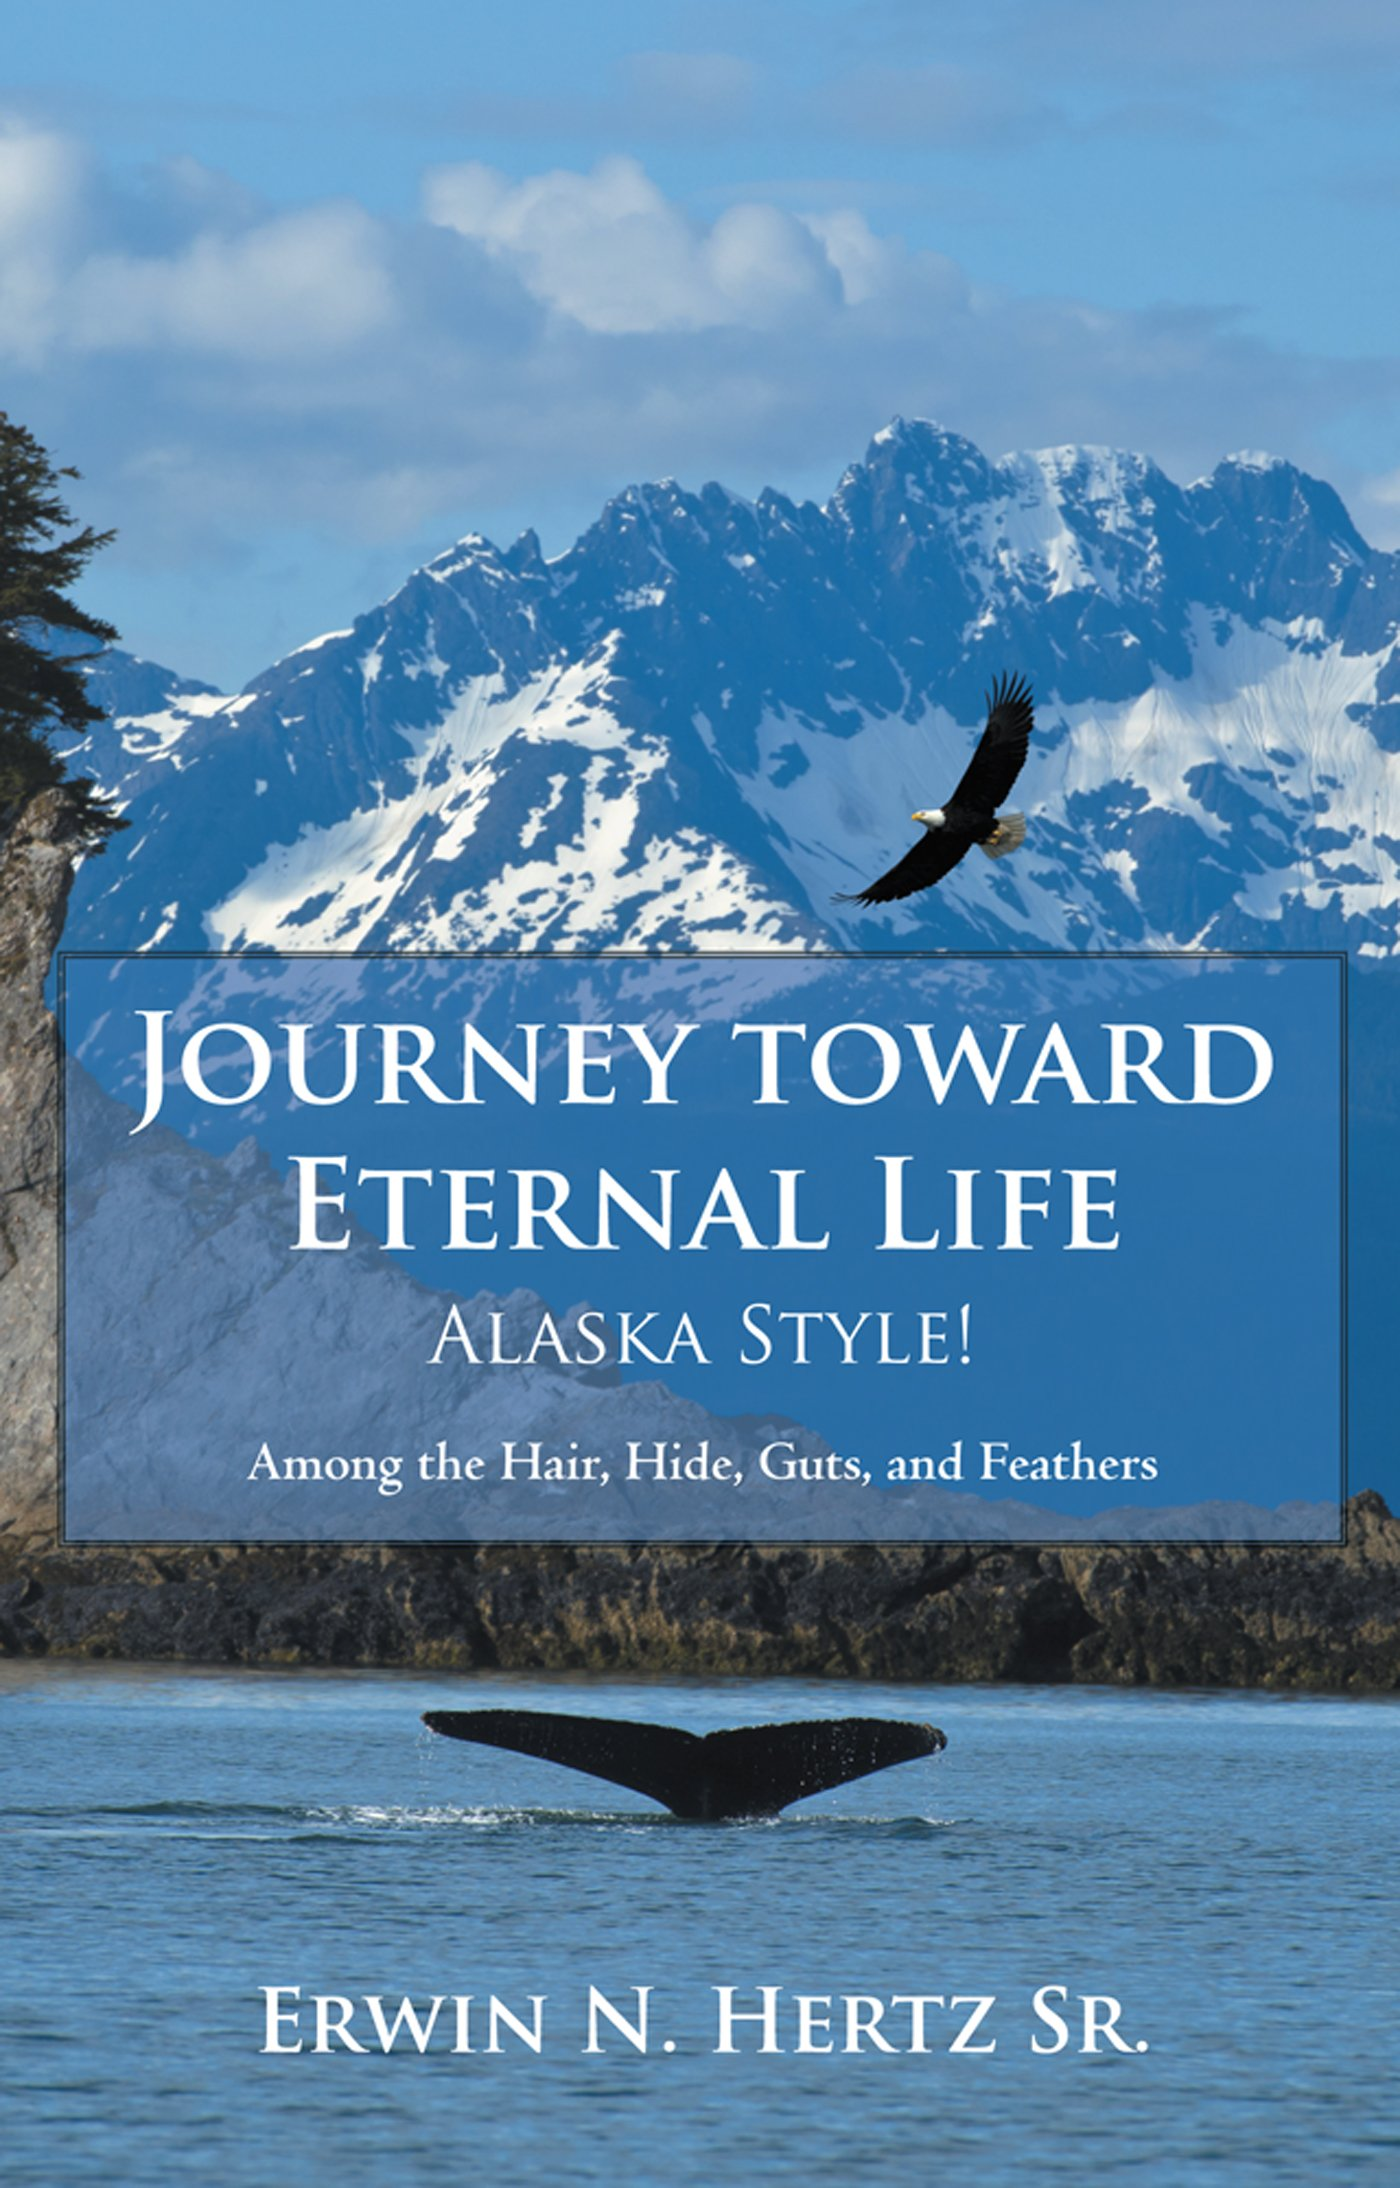 Journey Toward Eternal Life—Alaska Style!: Among the Hair, Hide, Guts, and Feathers